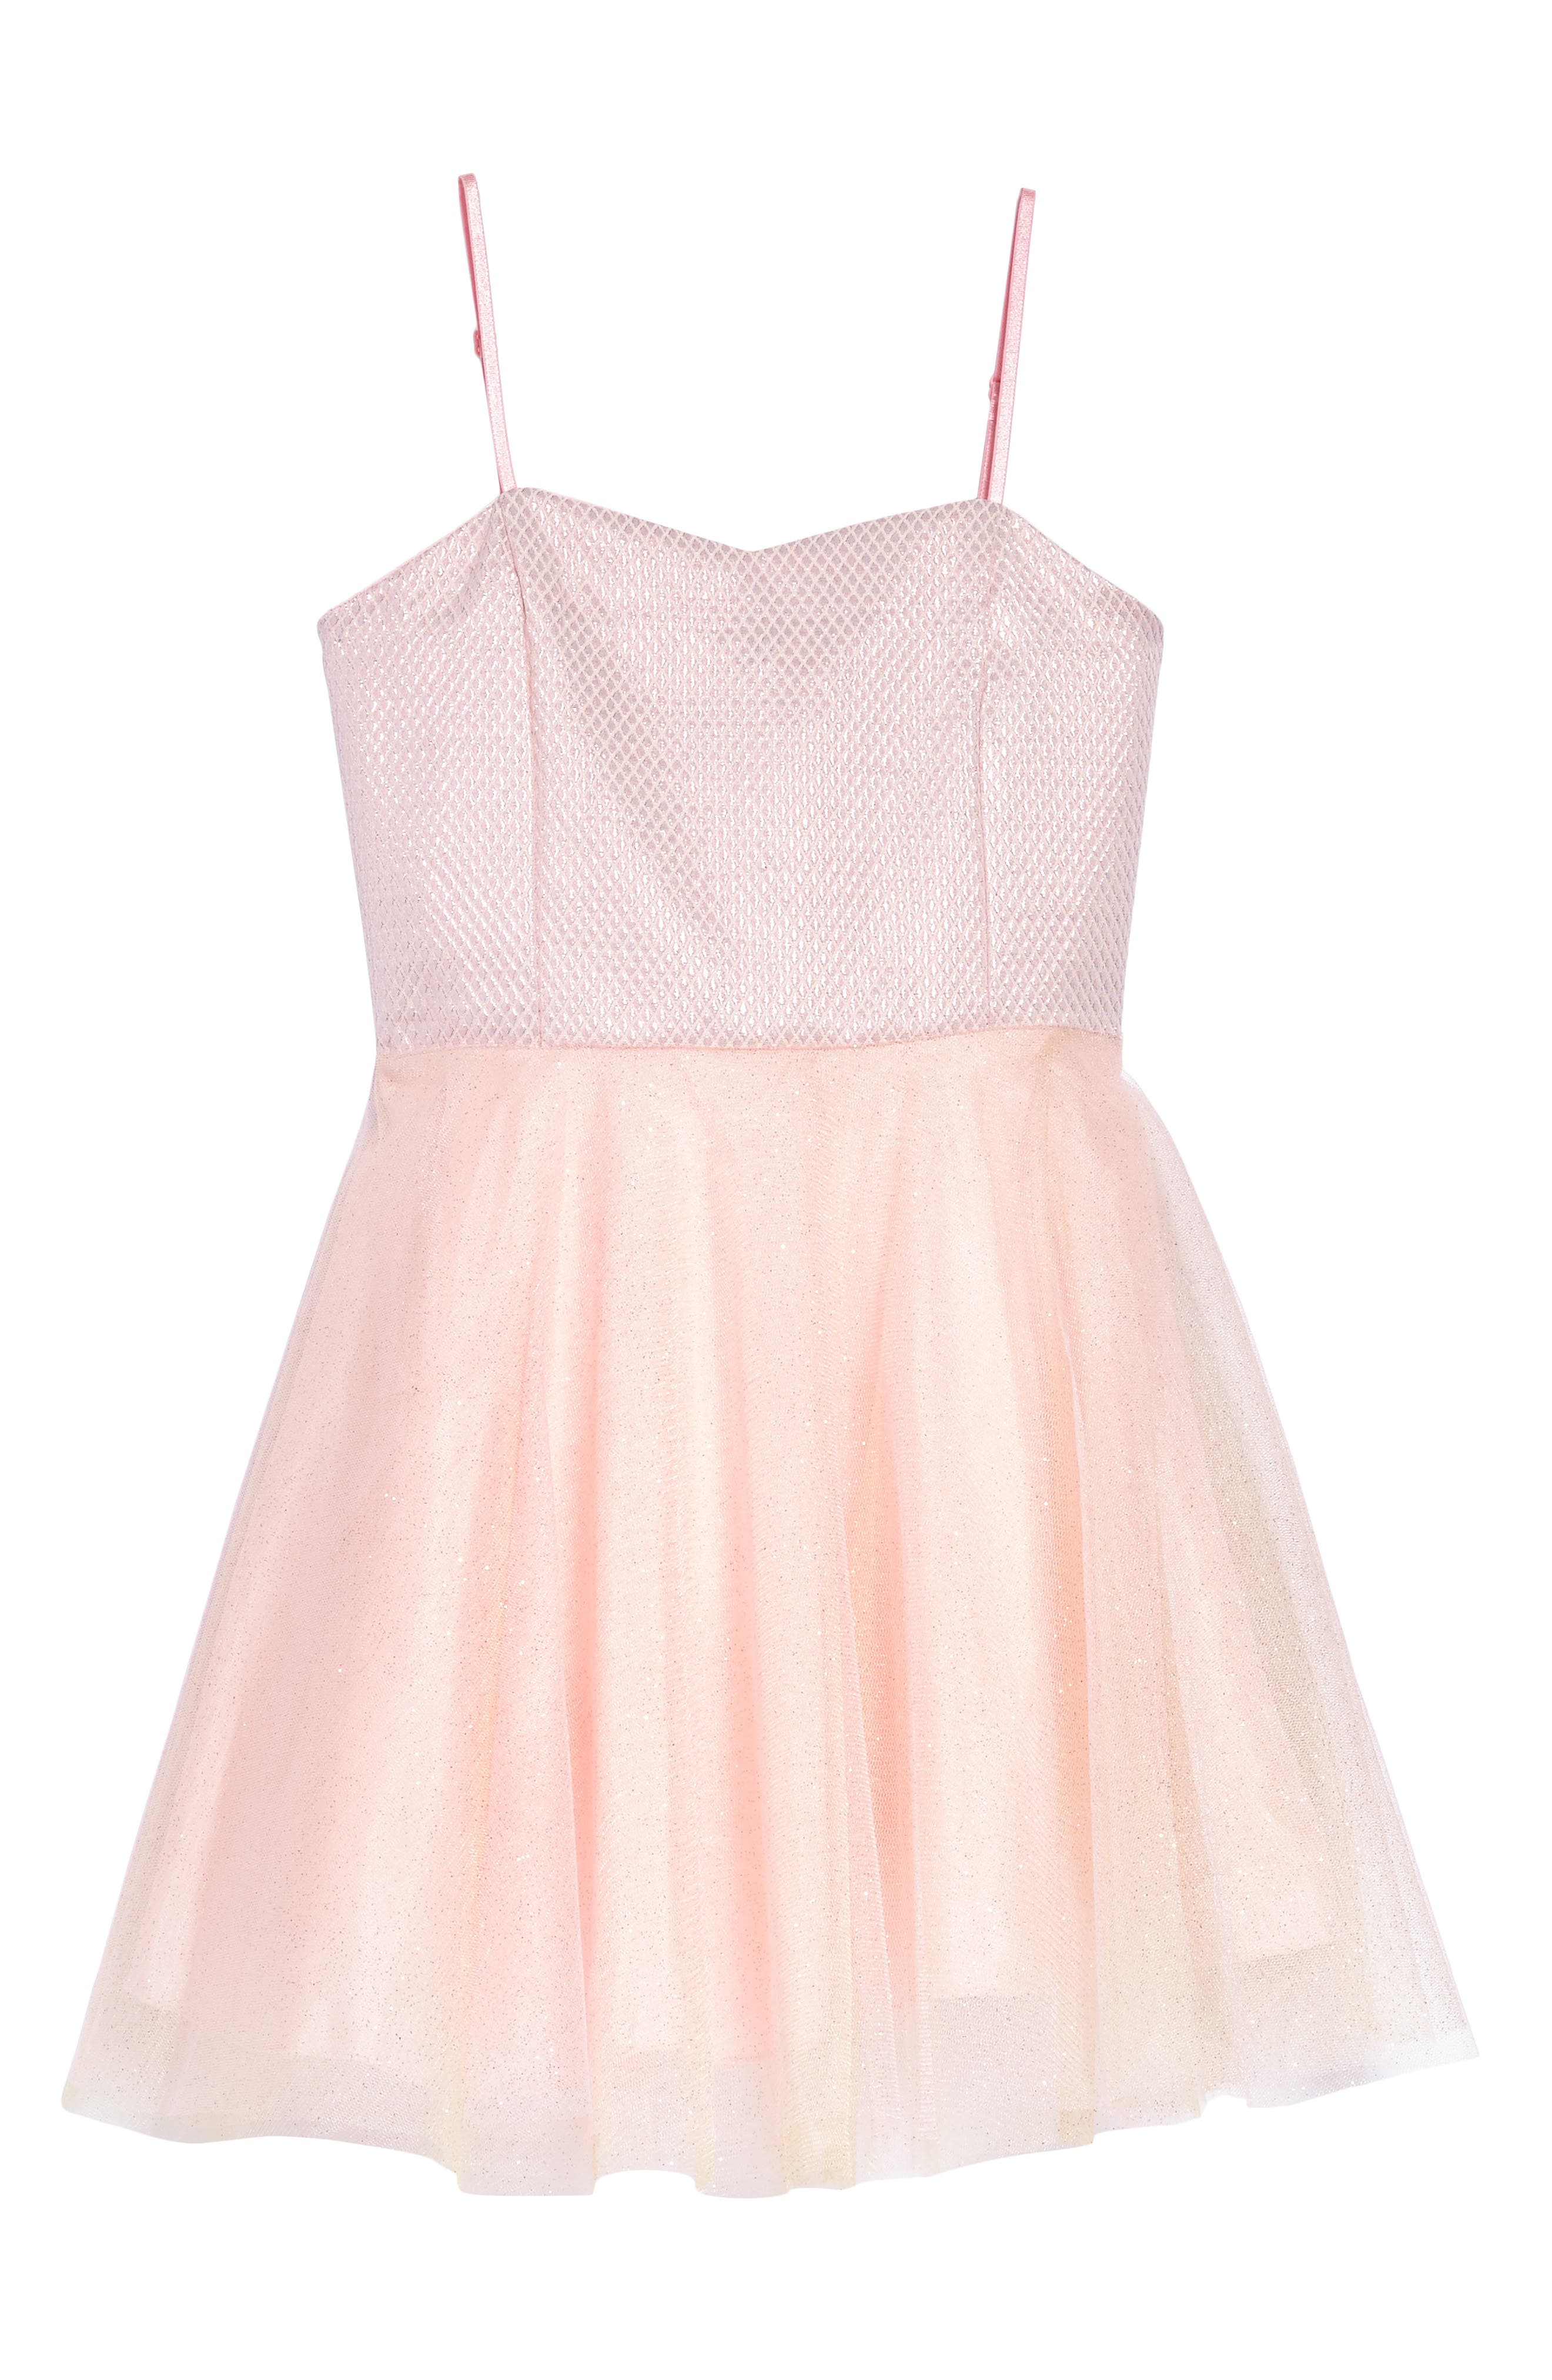 Iridescent Tulle Dress,                         Main,                         color, Pink